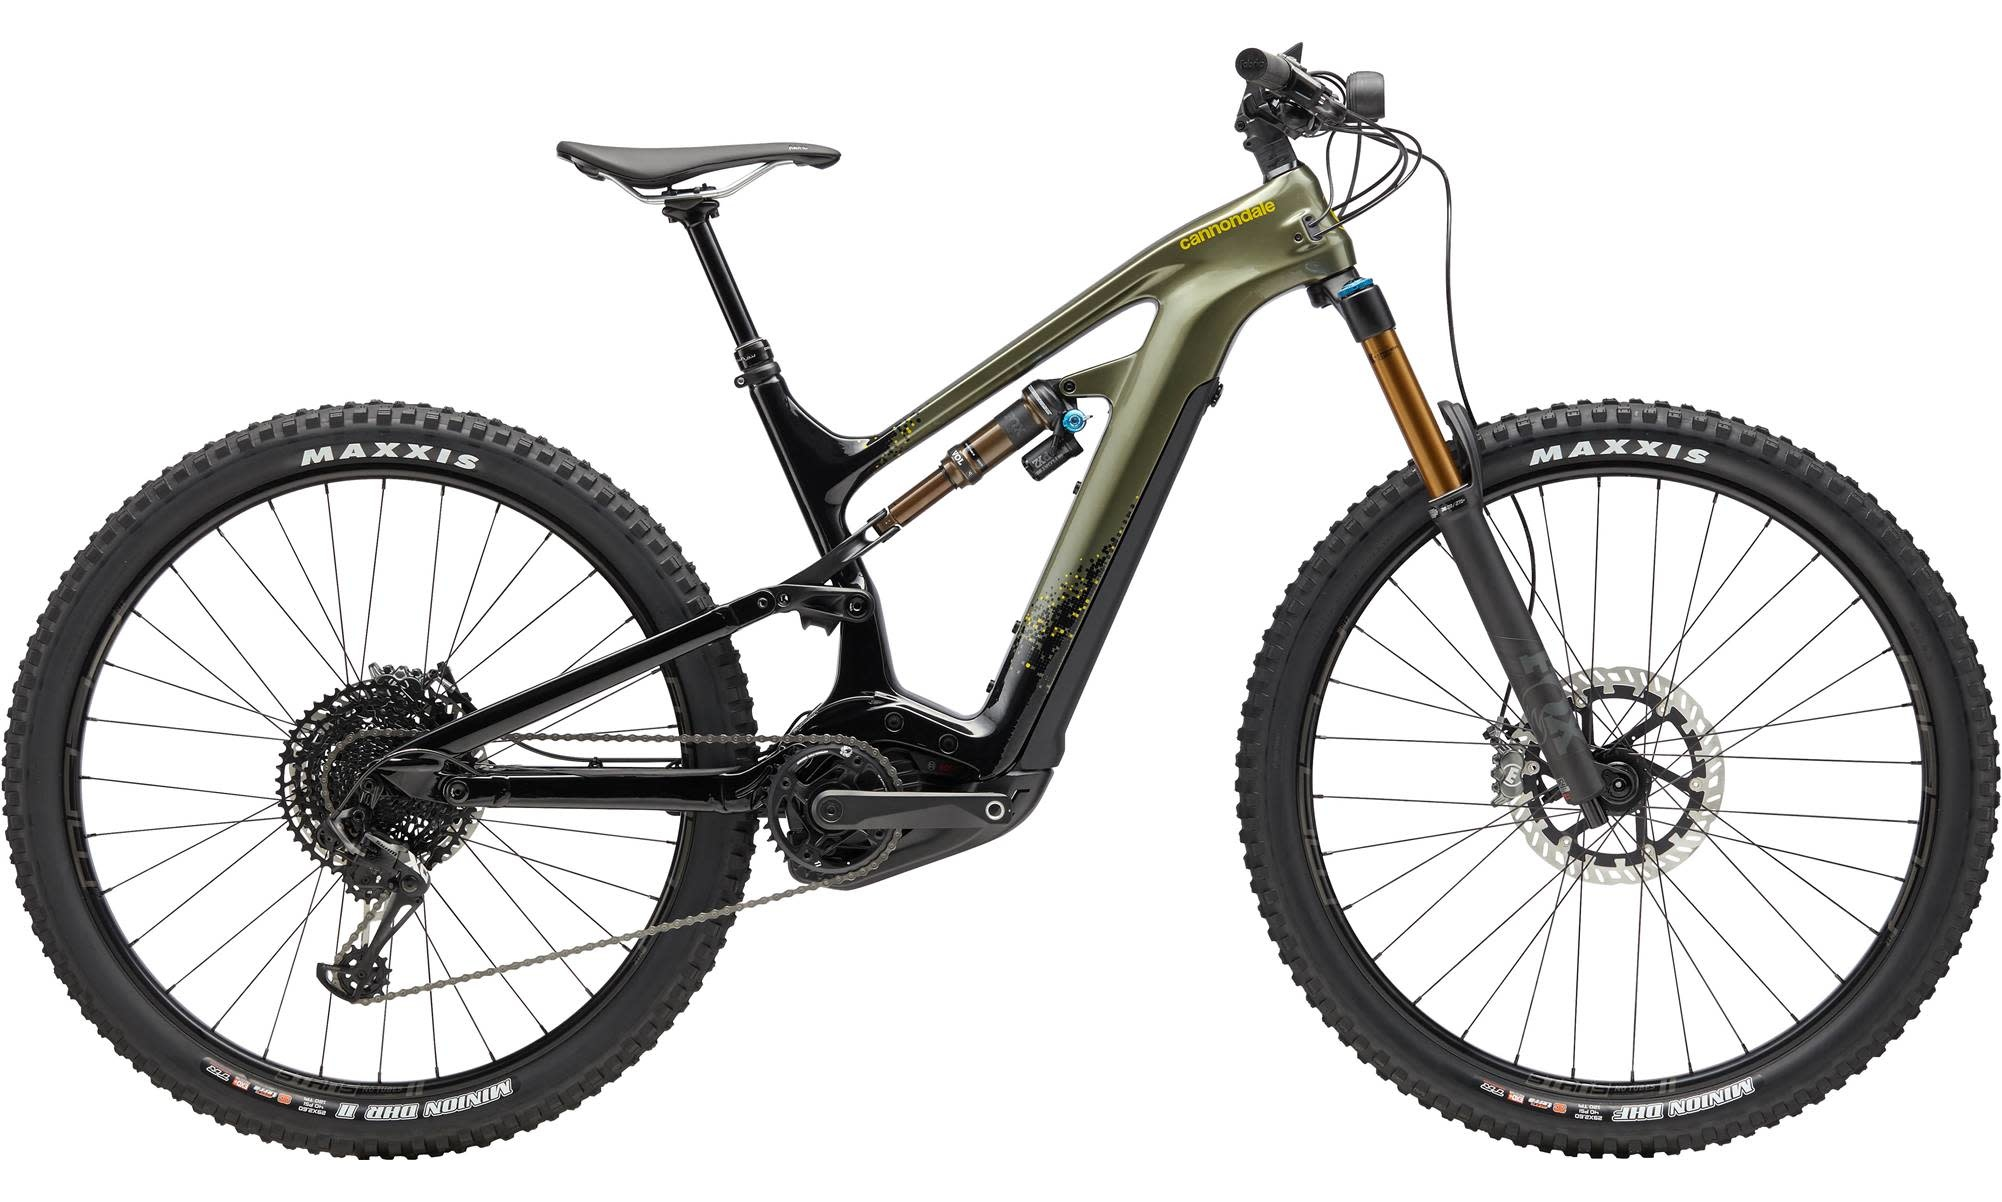 Cannondale Cannondale Moterra Neo 1 27.5 Electric Mountain Bike 2020